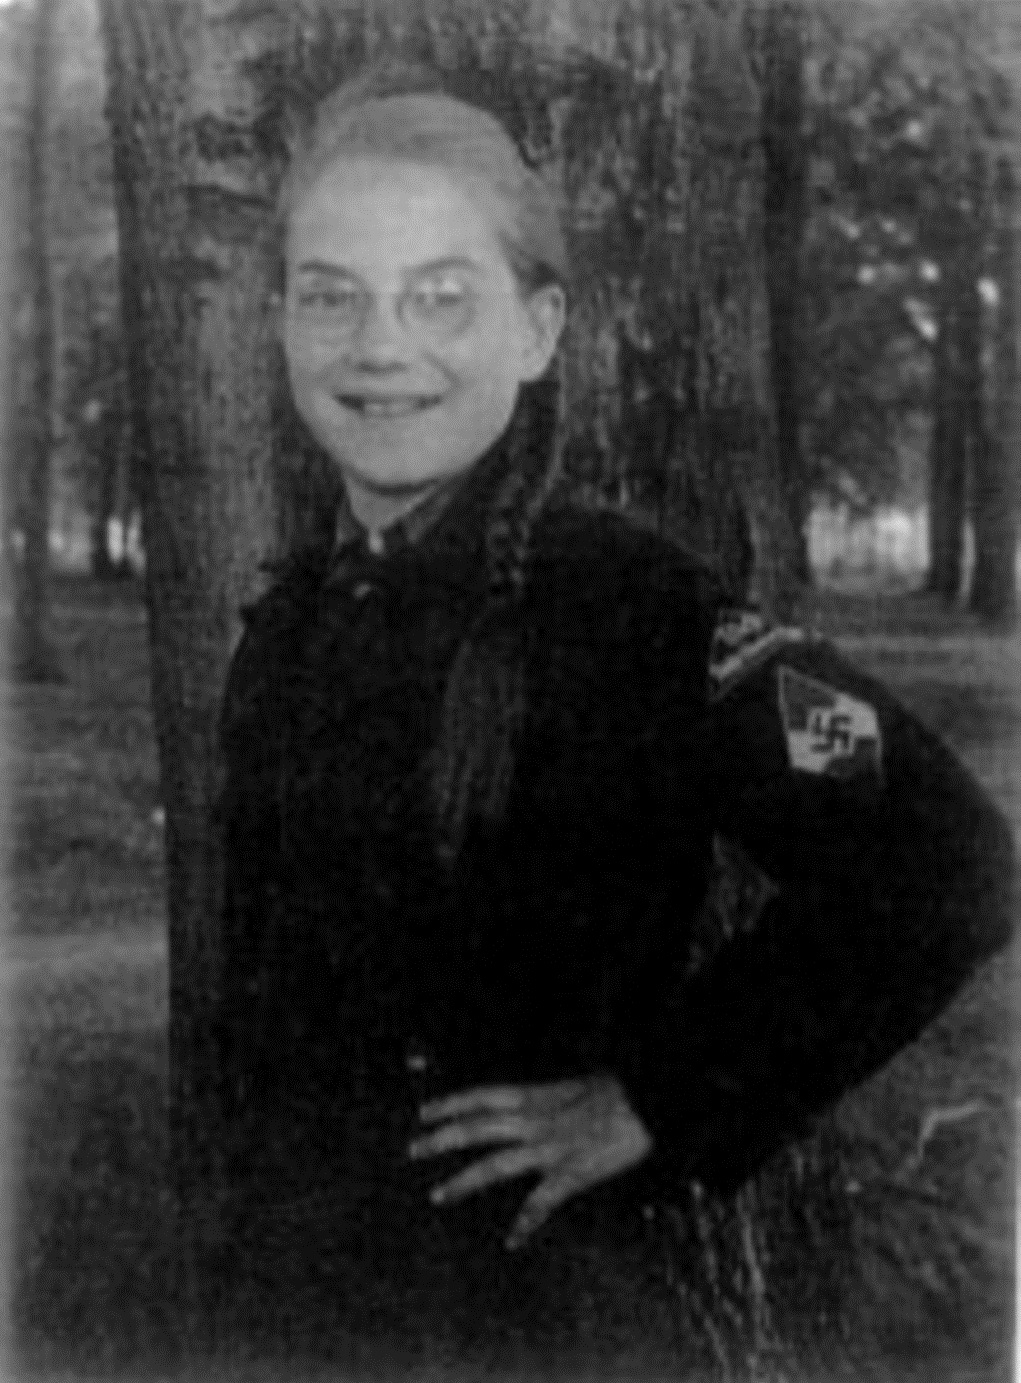 Exponat: Photo: Ursula Sabel in Uniform (Kollektives Gedächtnis)